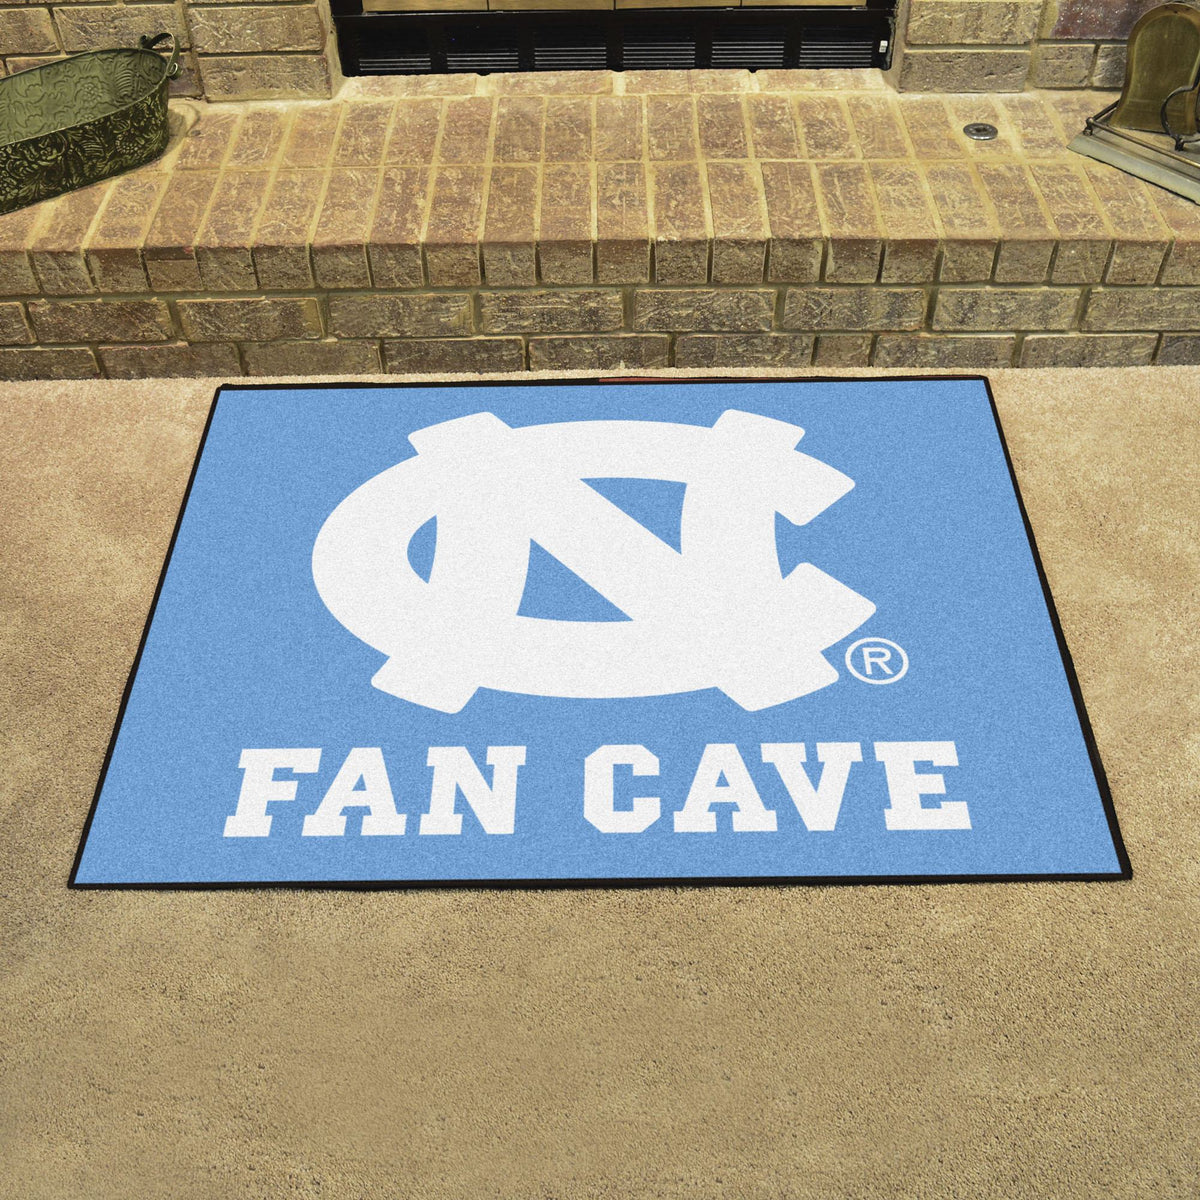 Collegiate - Fan Cave All-Star Mat Collegiate Mats, Rectangular Mats, All-Star Mat, Collegiate, Home Fan Mats Team